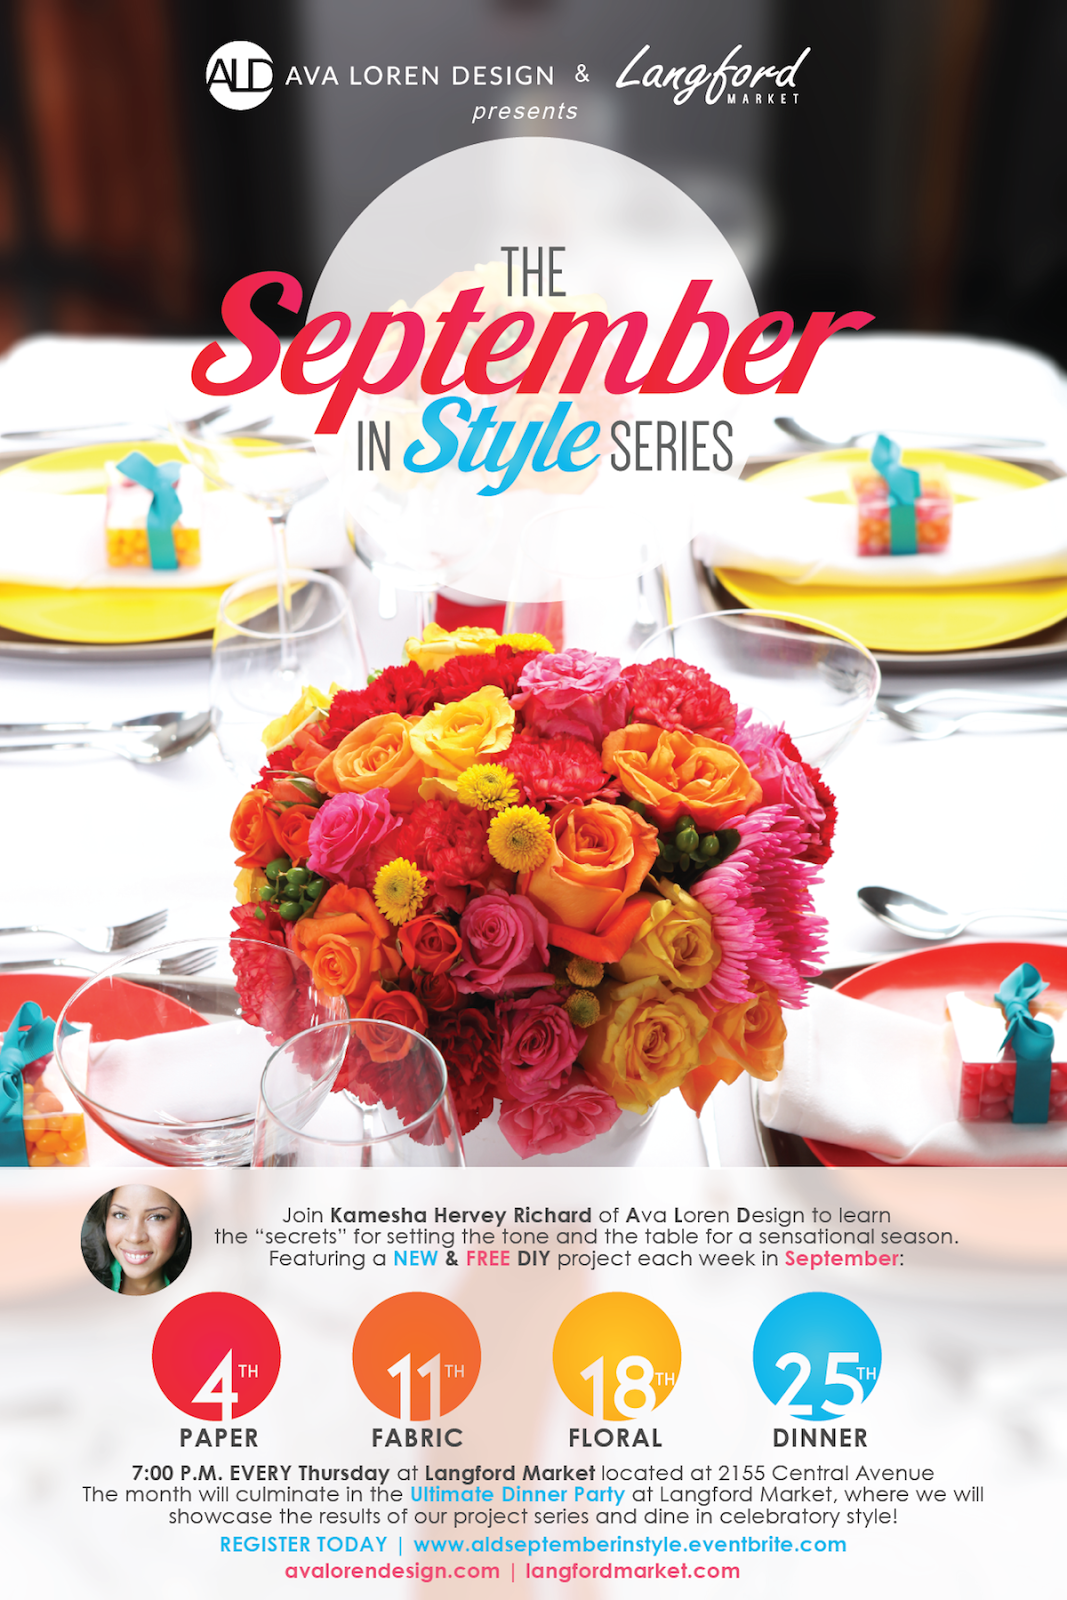 September In Style Series with Ava Loren Design